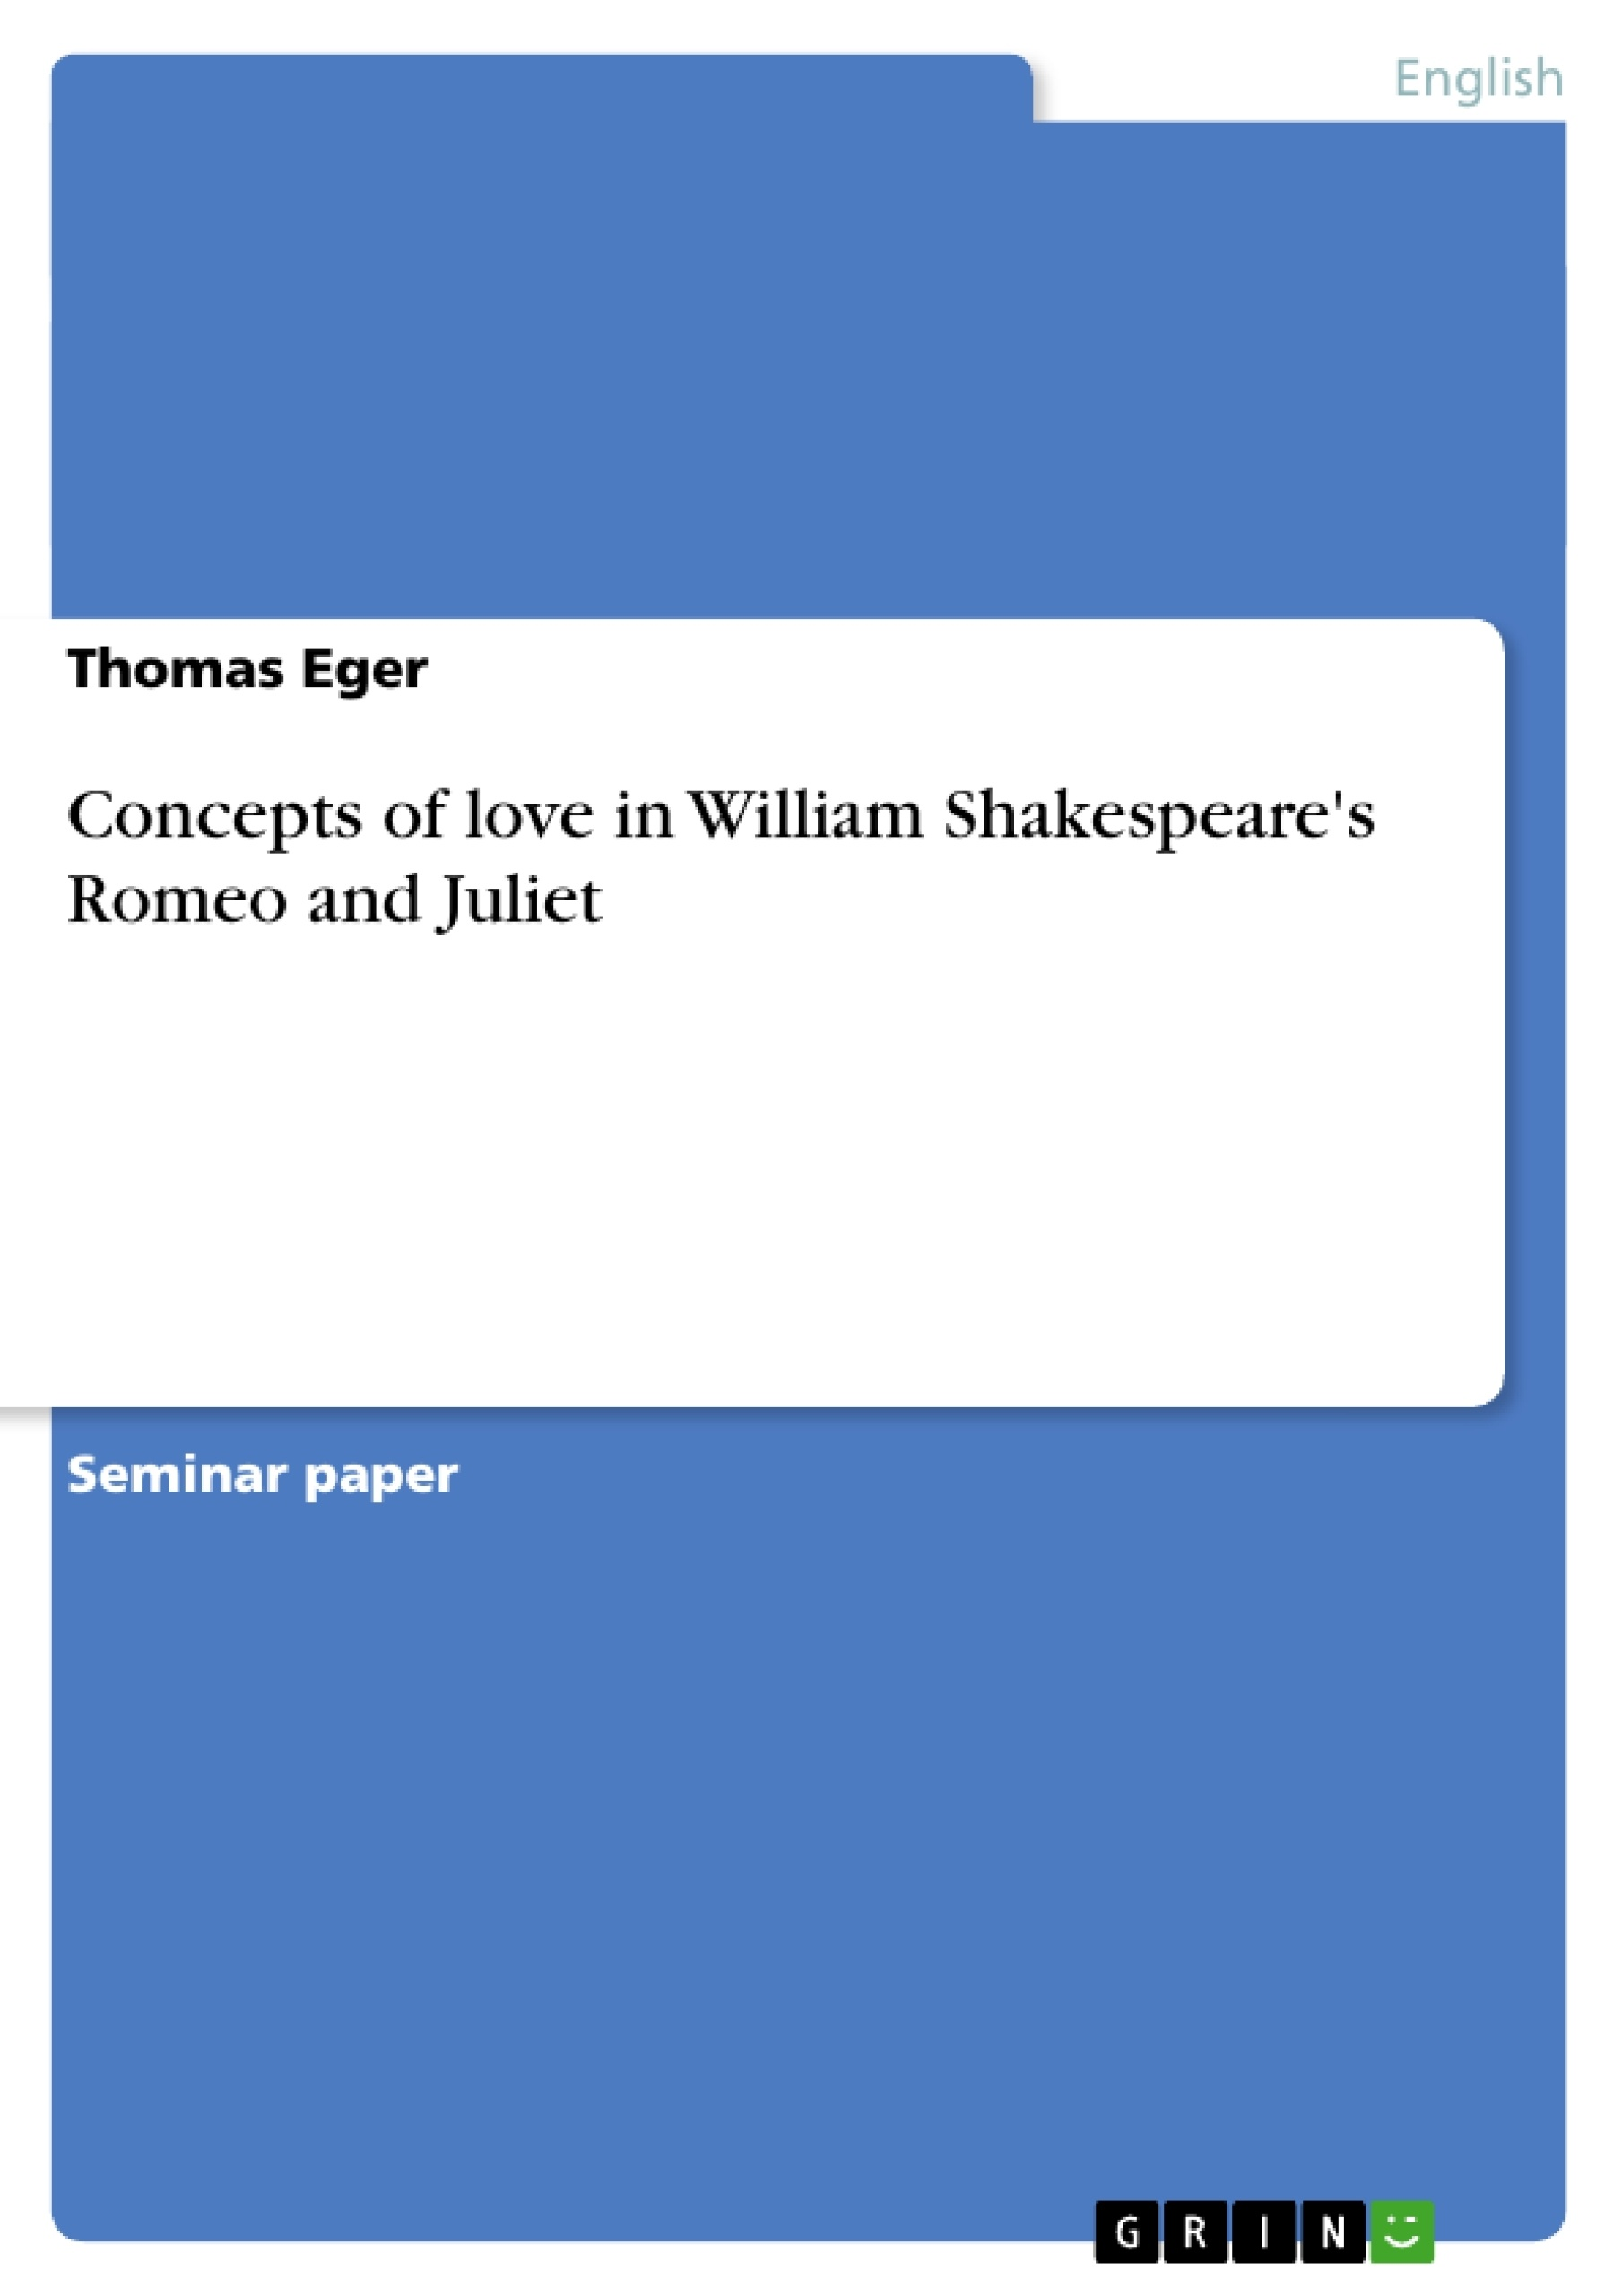 concepts of love in william shakespeare s romeo and juliet upload your own papers earn money and win an iphone 7